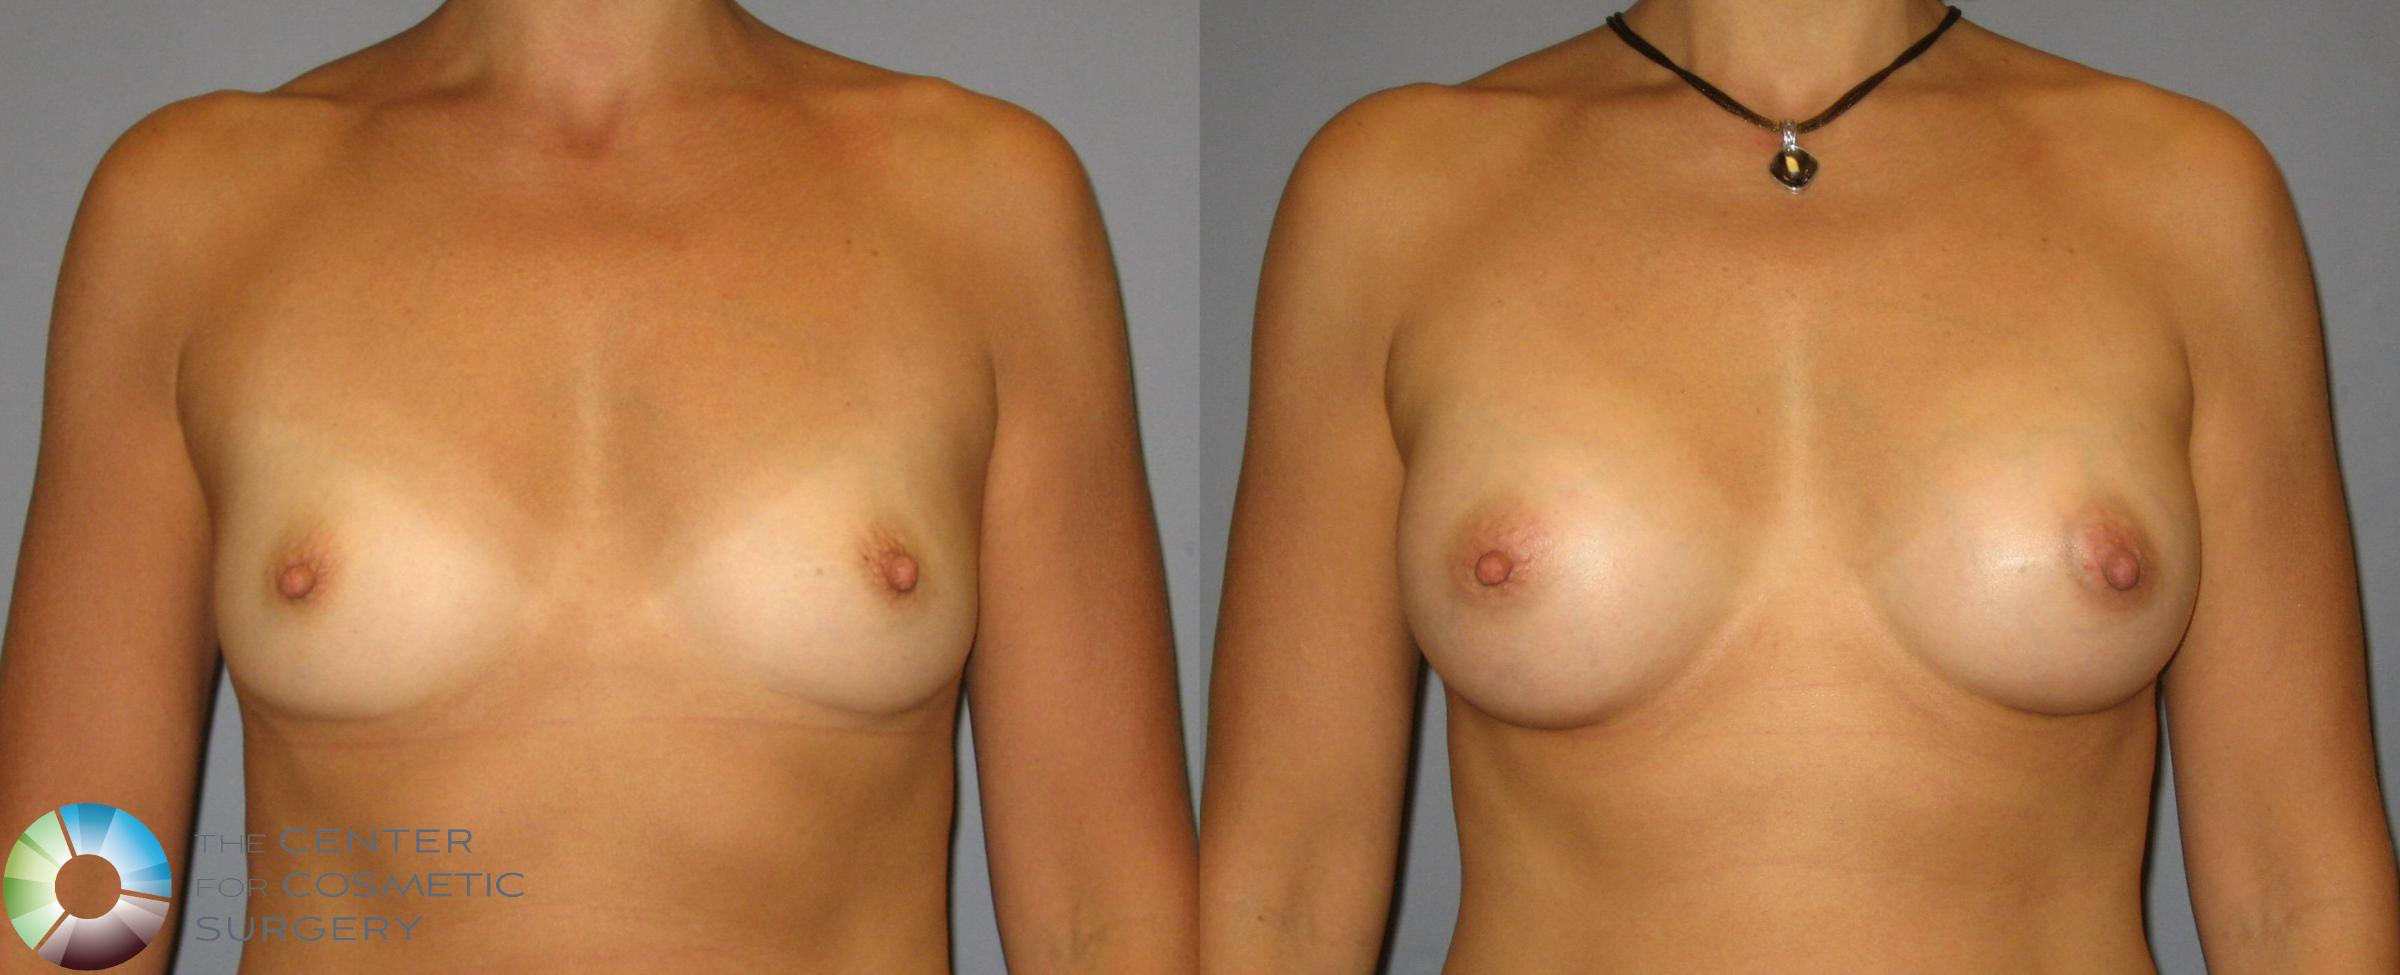 Breast Augmentation Case 351 Before & After View #1 | Golden, CO | The Center for Cosmetic Surgery